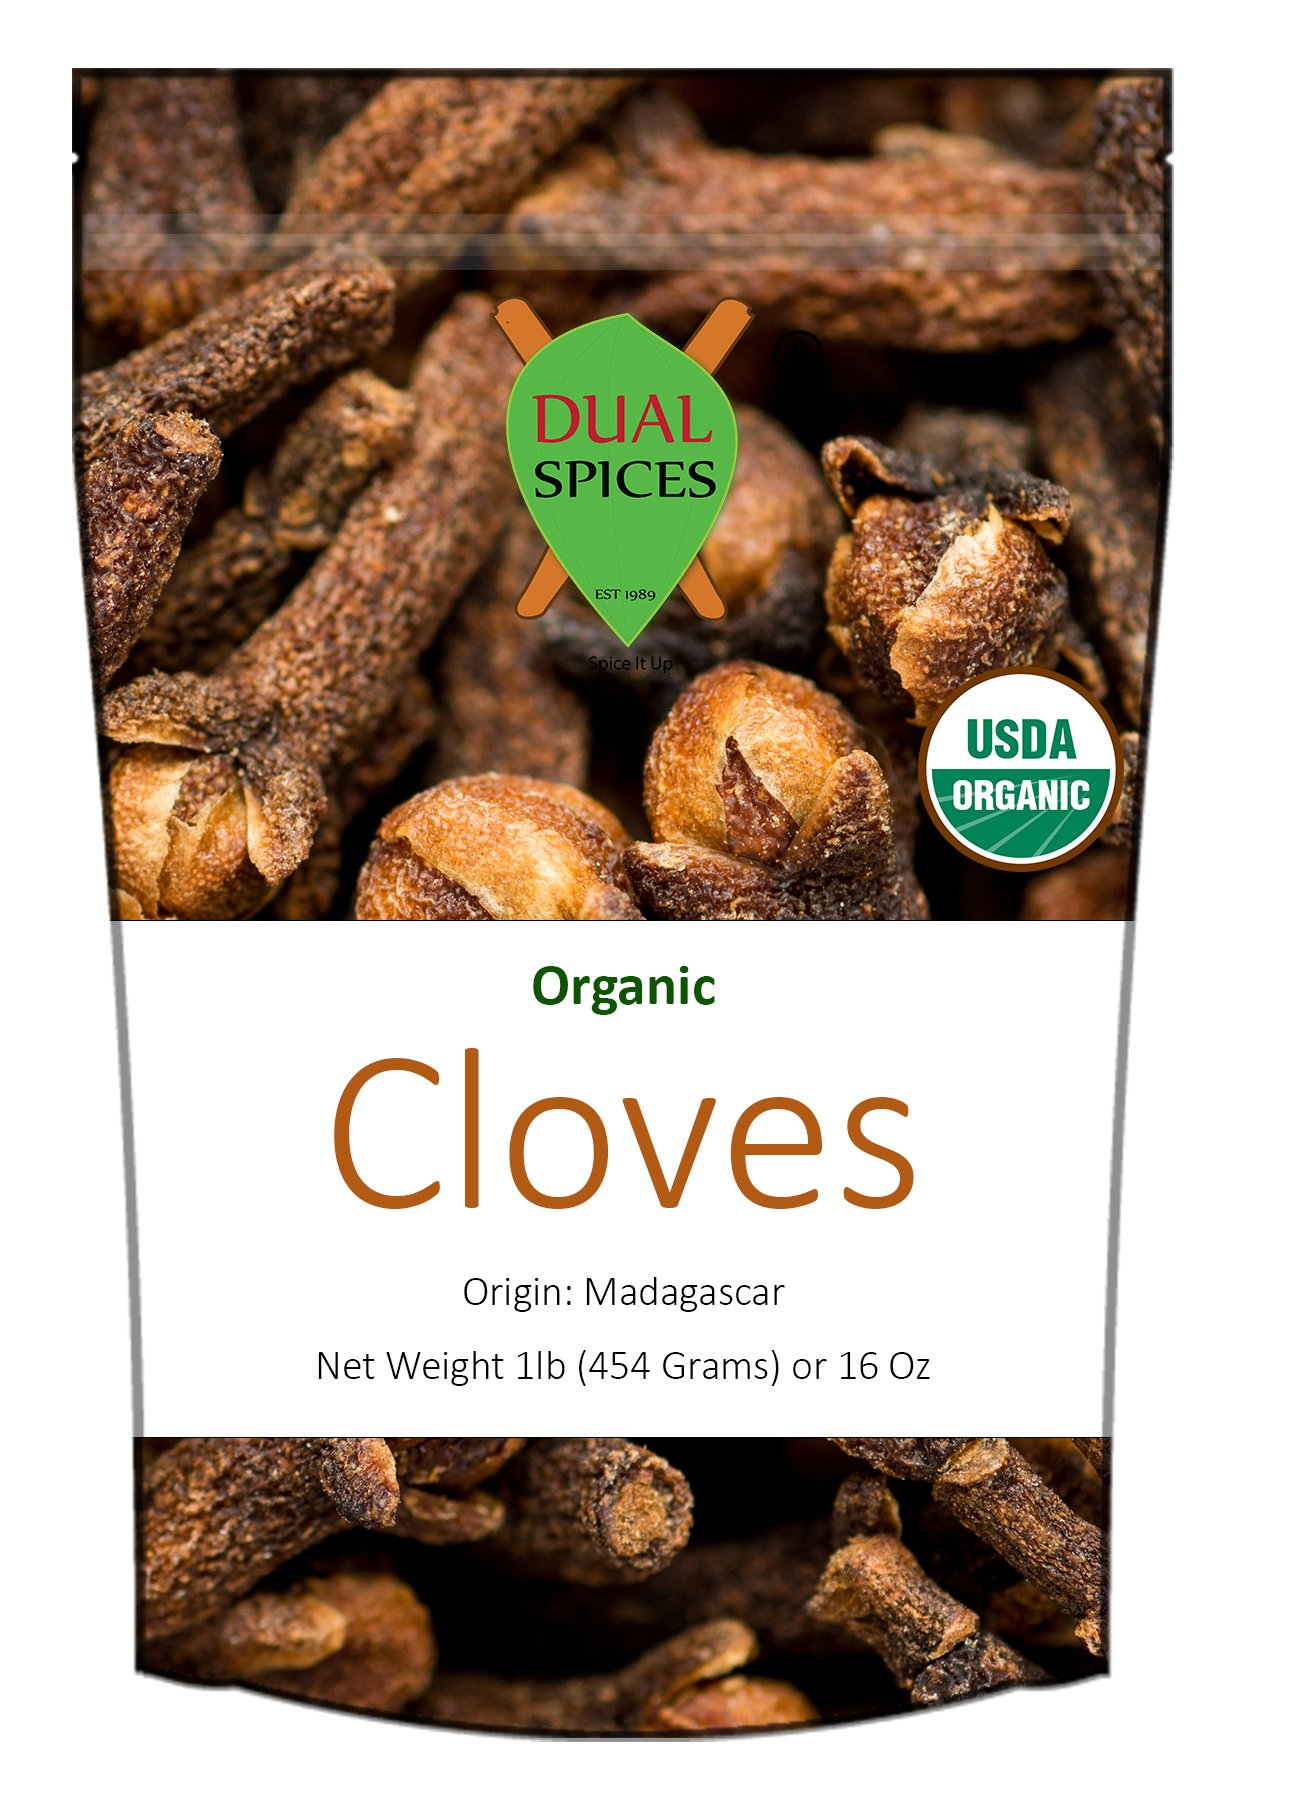 LIMITED TIME SALE - Dualspices Organic Cloves Hand Picked Madagascar 1lb - Resealable Bag